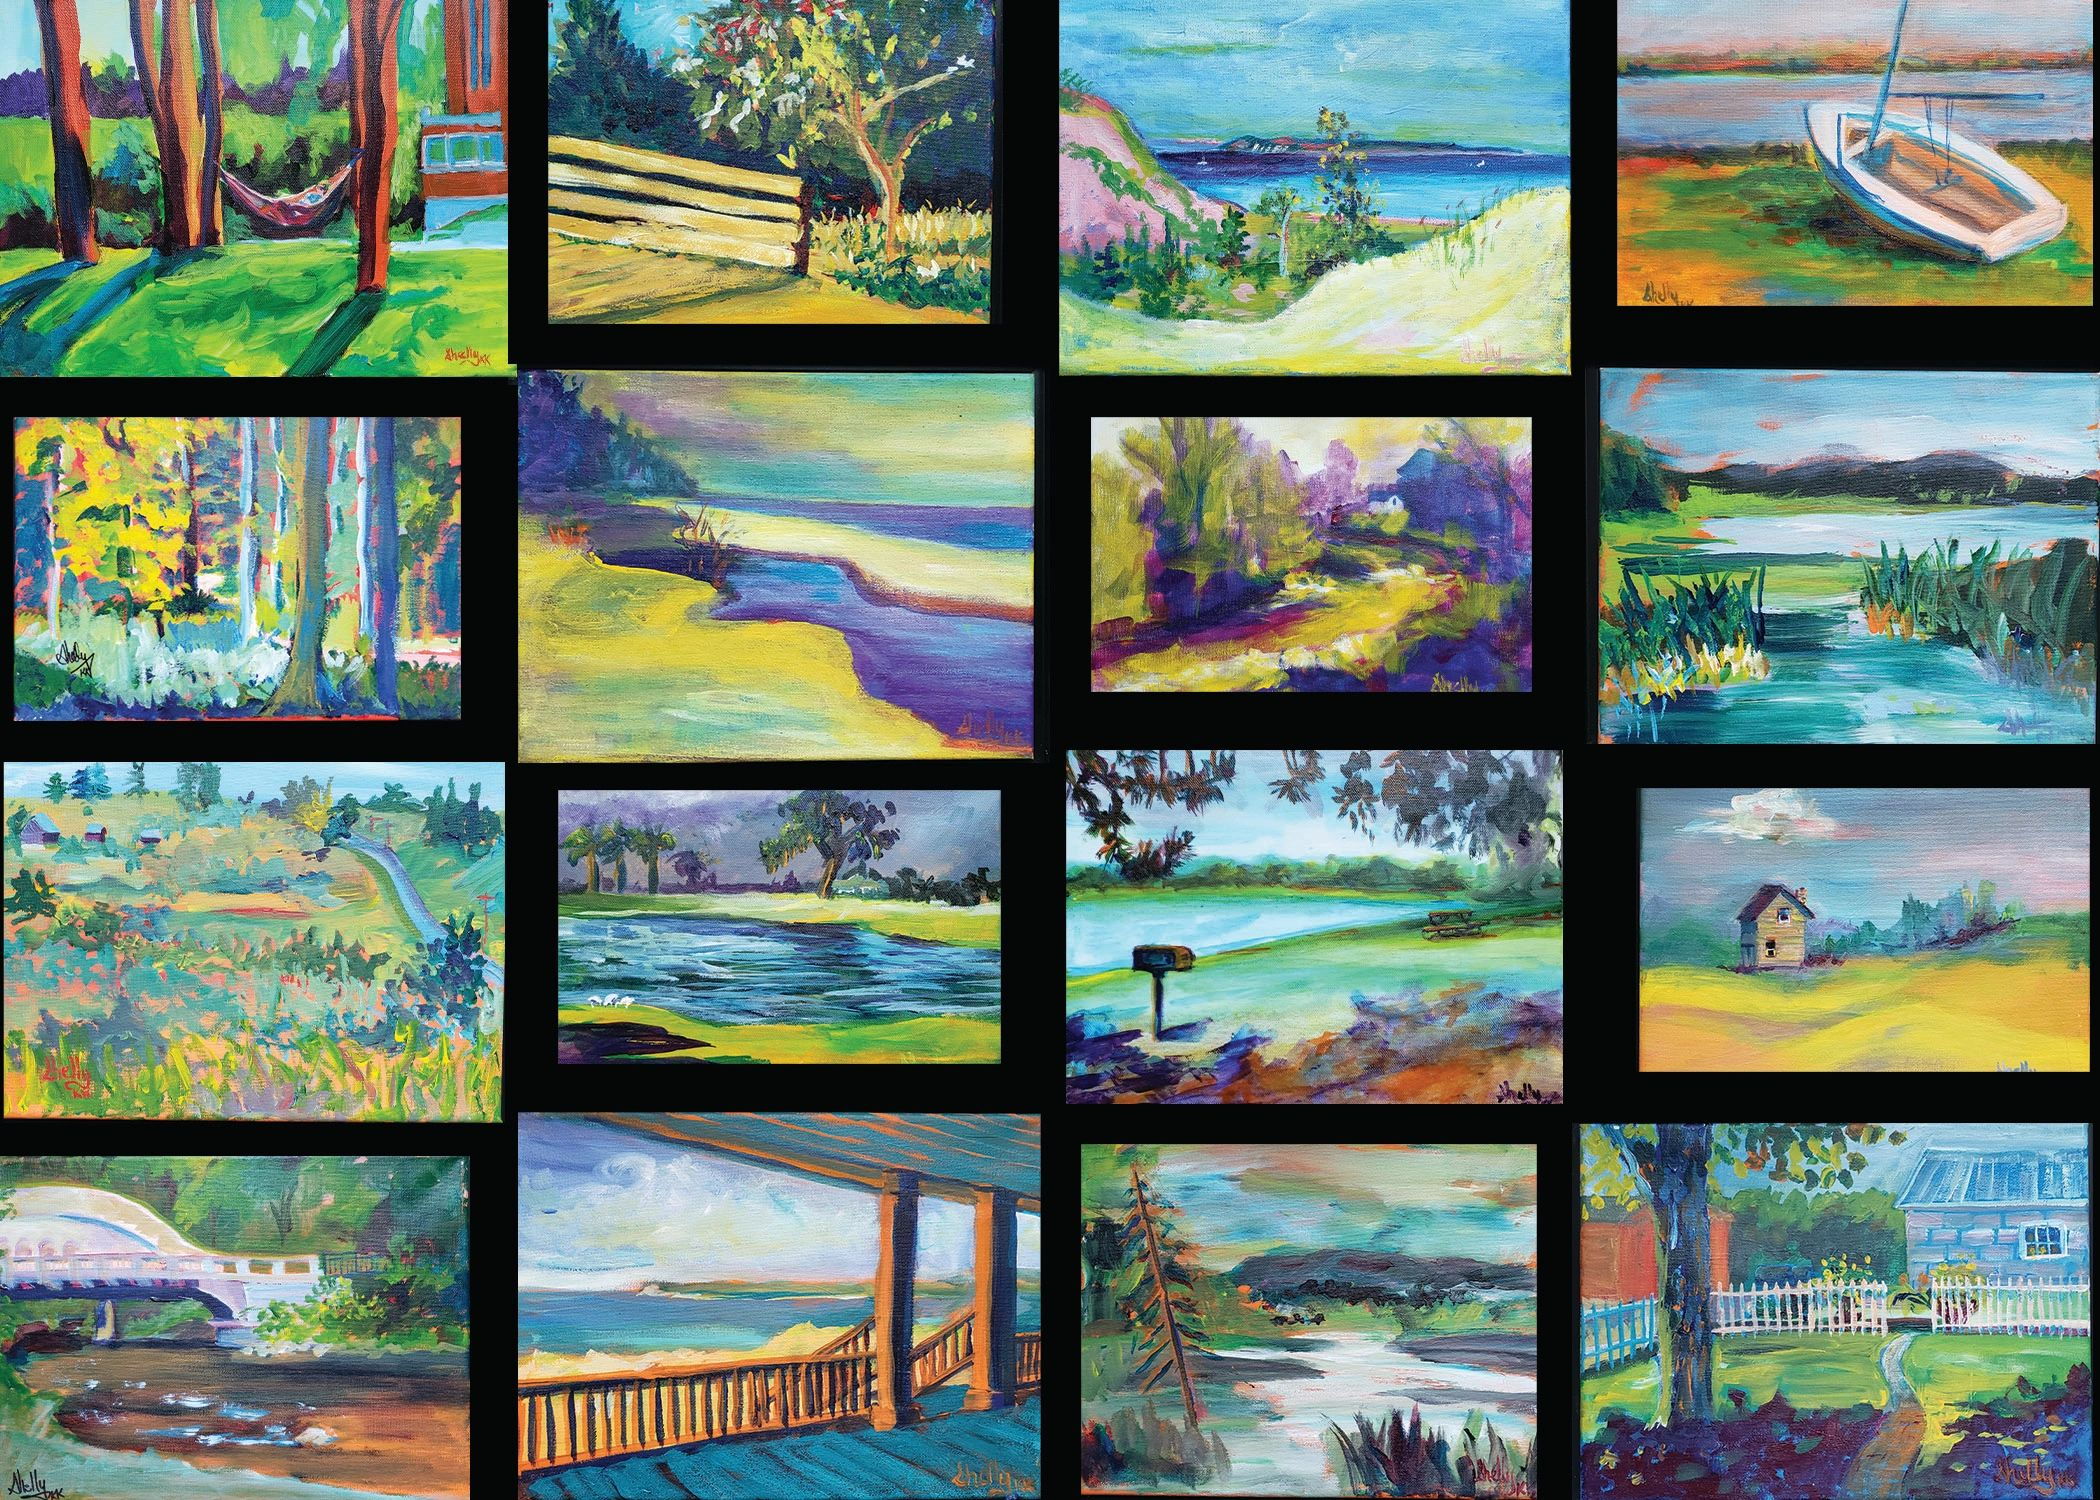 plein aire acrylic paintings.